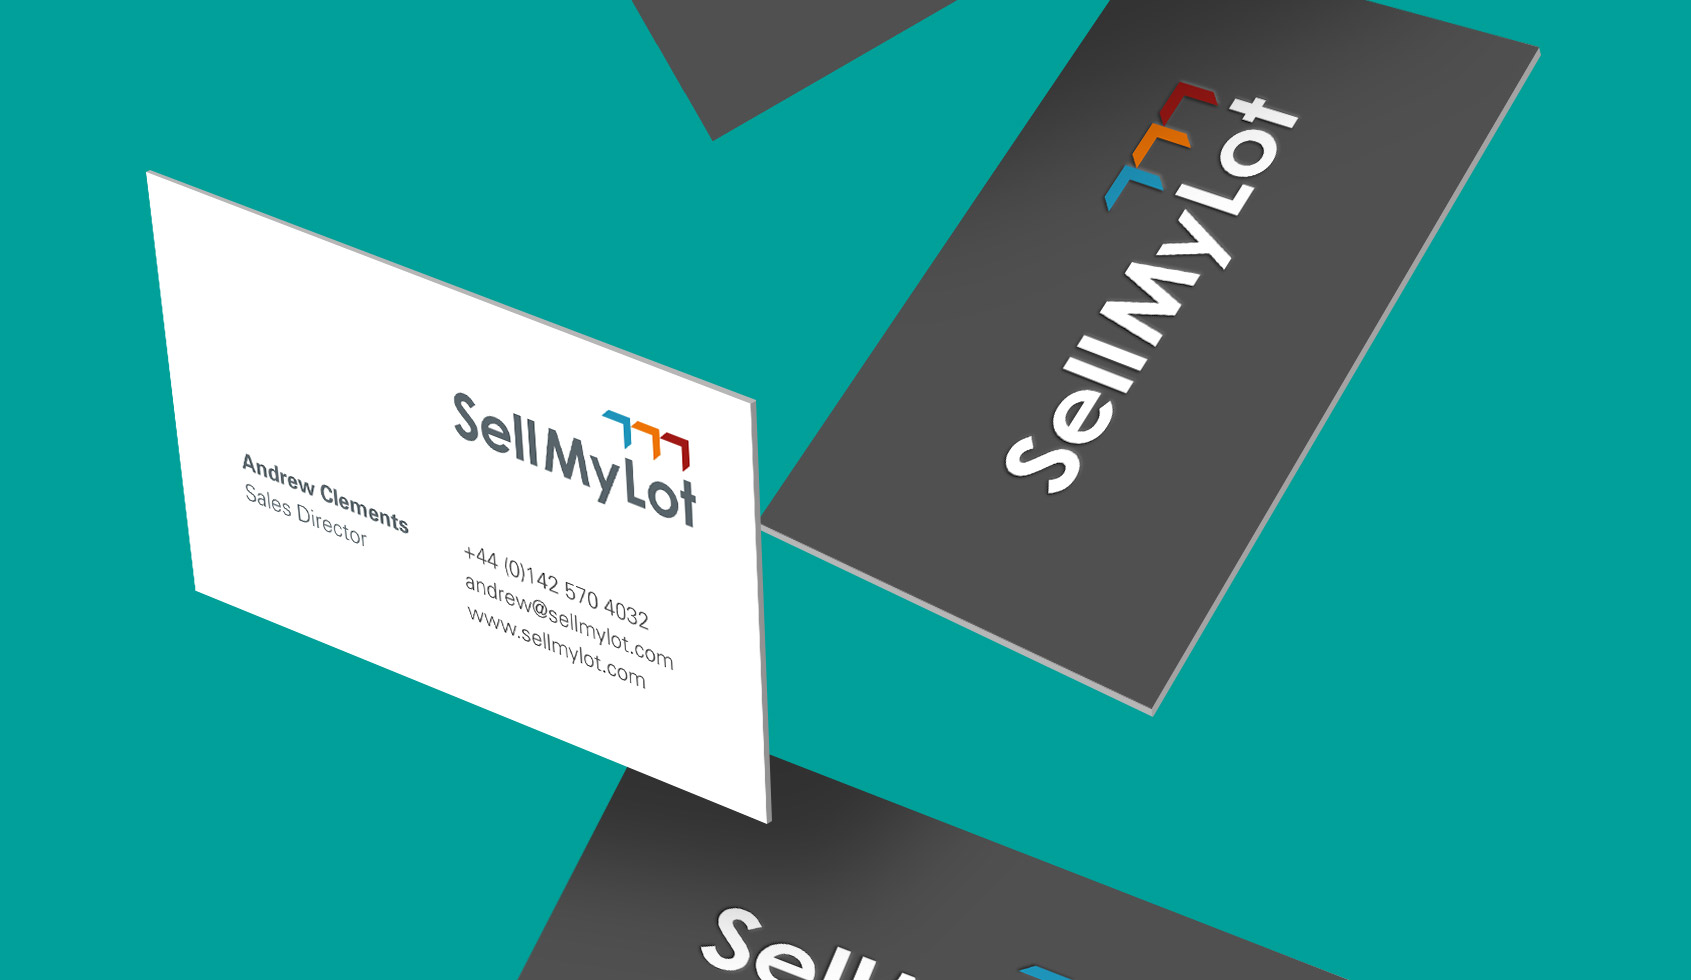 SellMyLot branding on business cards